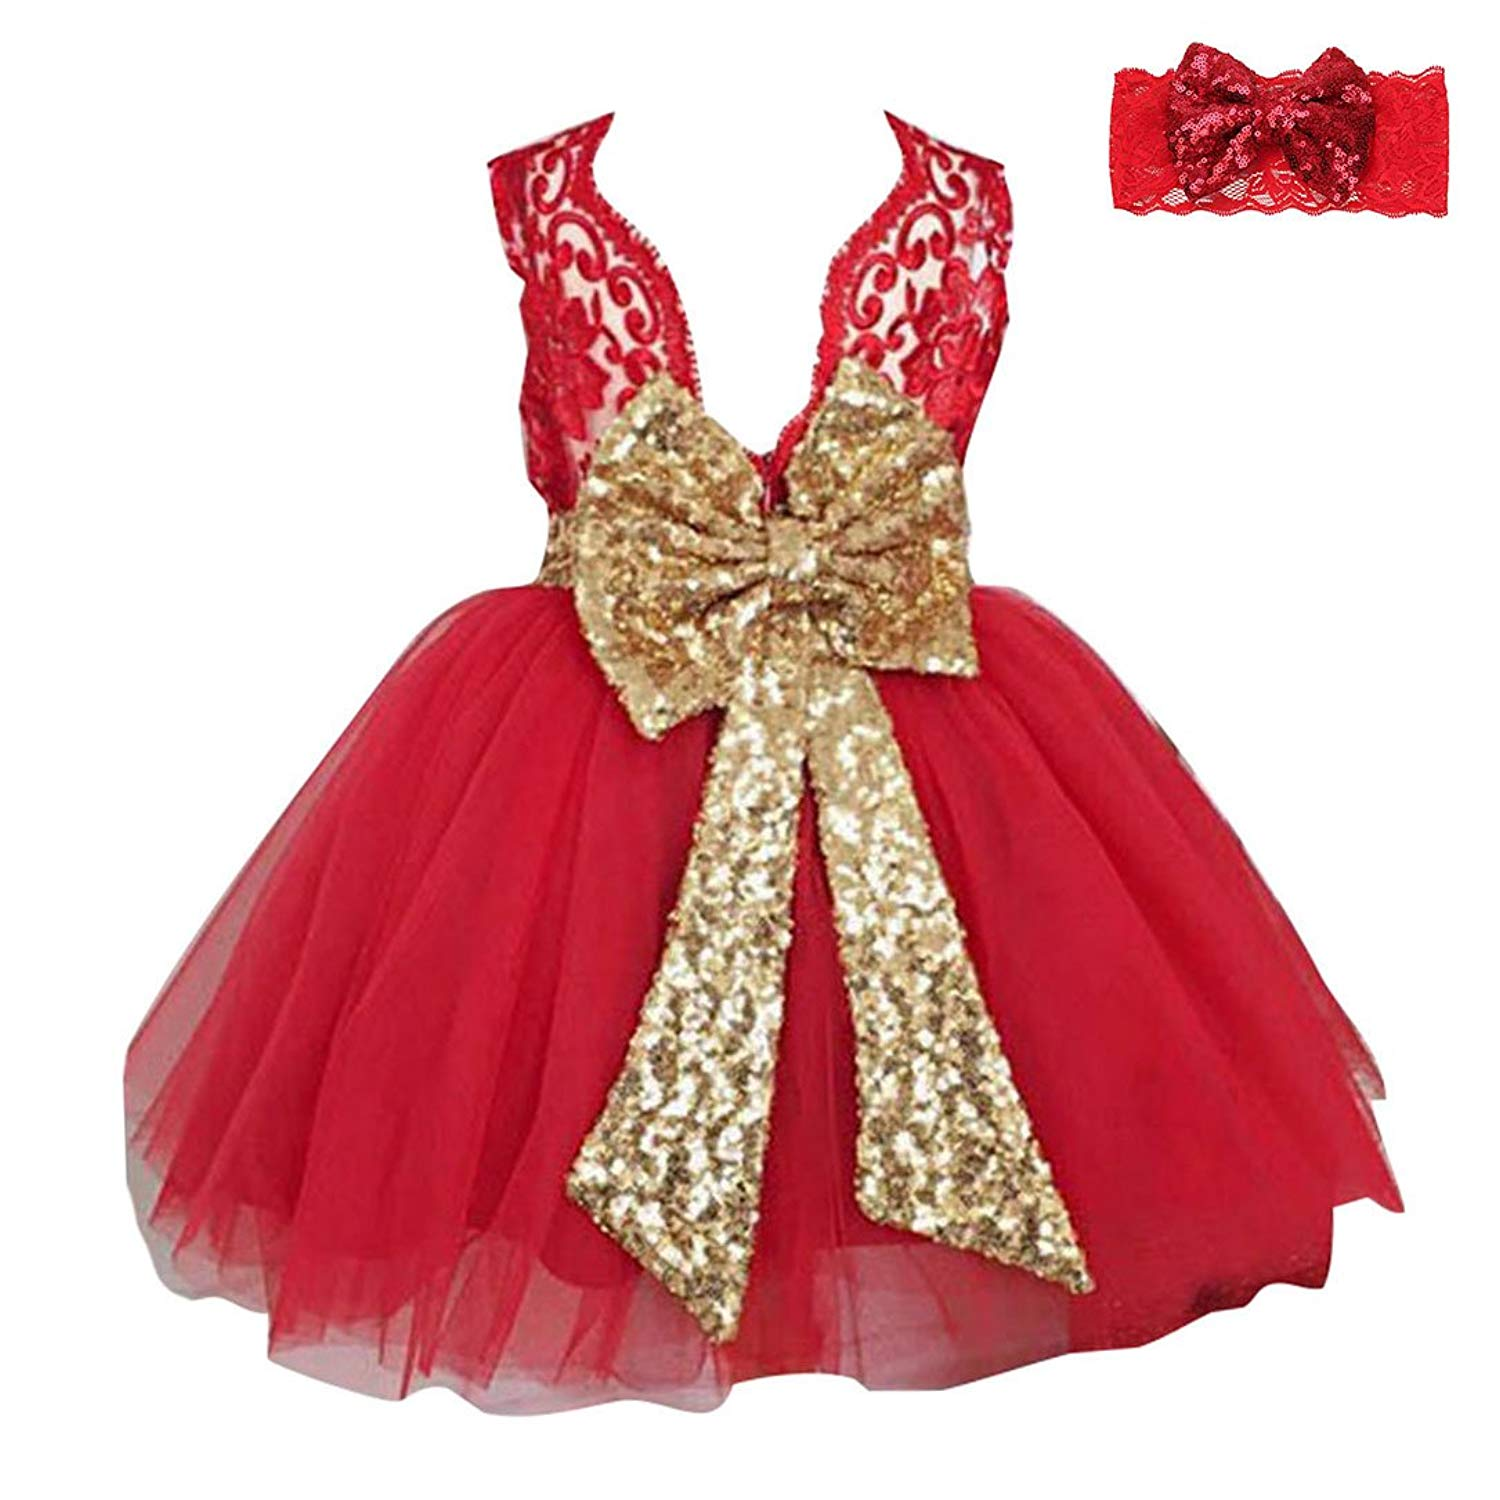 Boimoe Girls Bowknot Lace Princess Skirt Sequins Dress with Headband for Baby Toddlers Kids 0-5 years Old